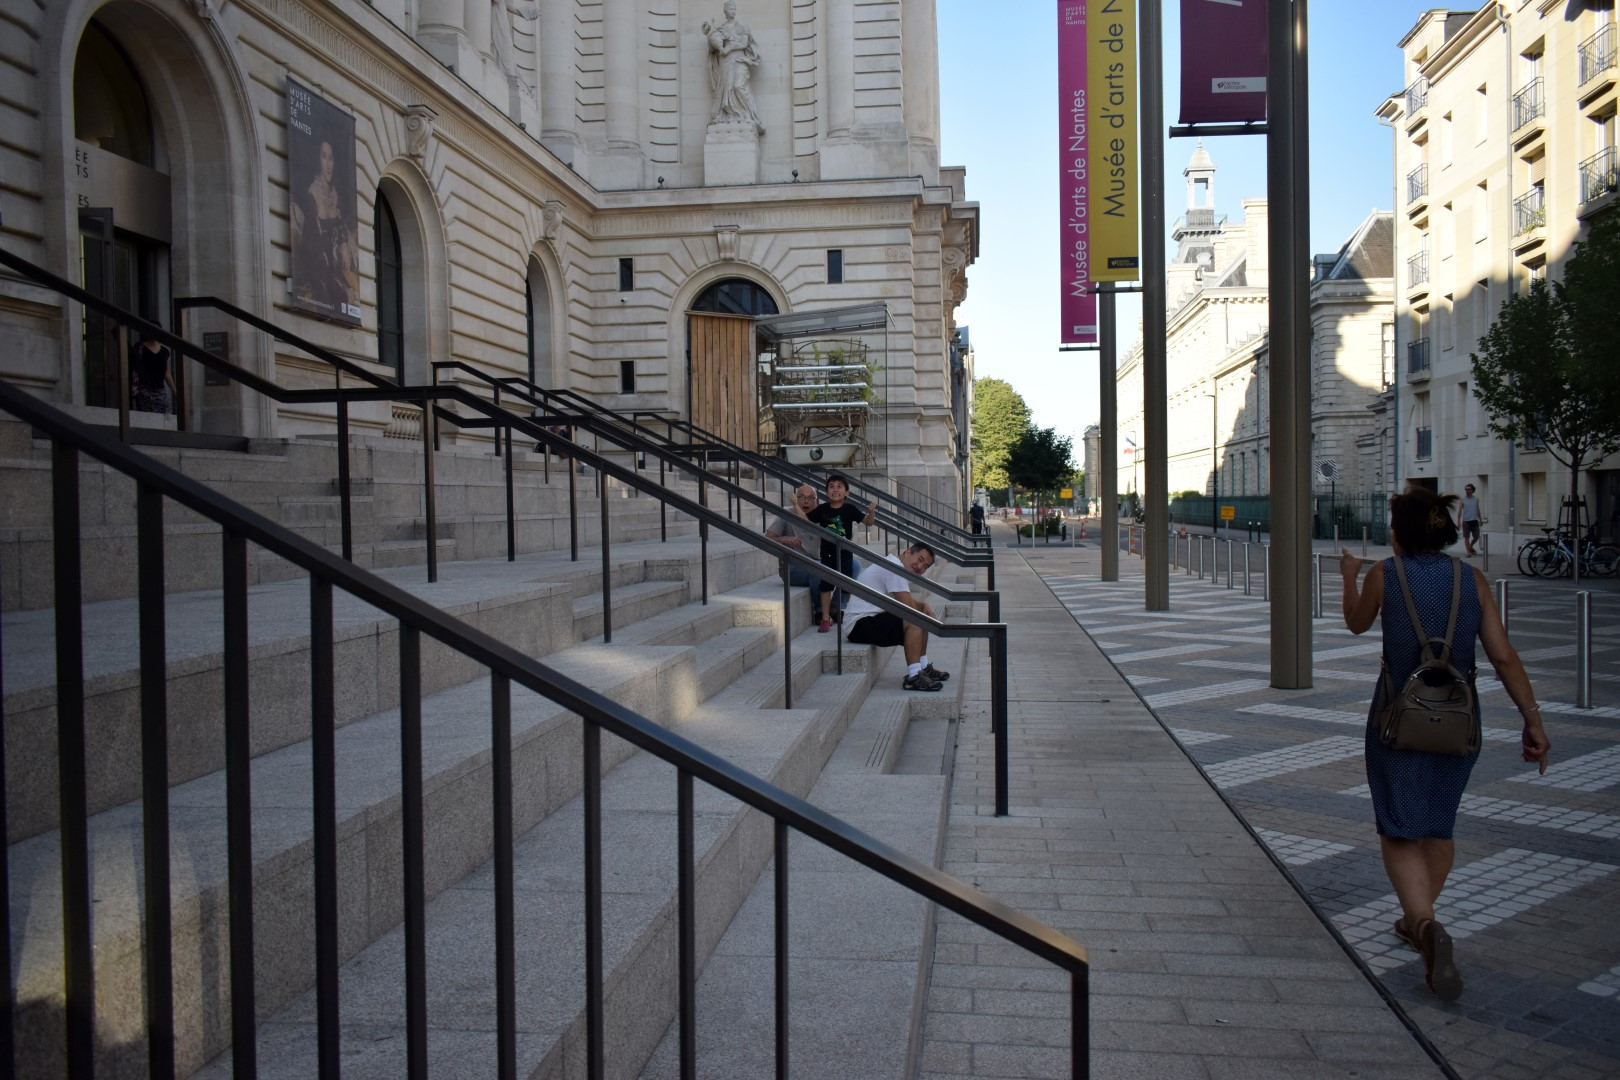 Nantes Beaux Arts Night At The Museum Art Is Best Enjoyed On A Hot Day After 7 P M